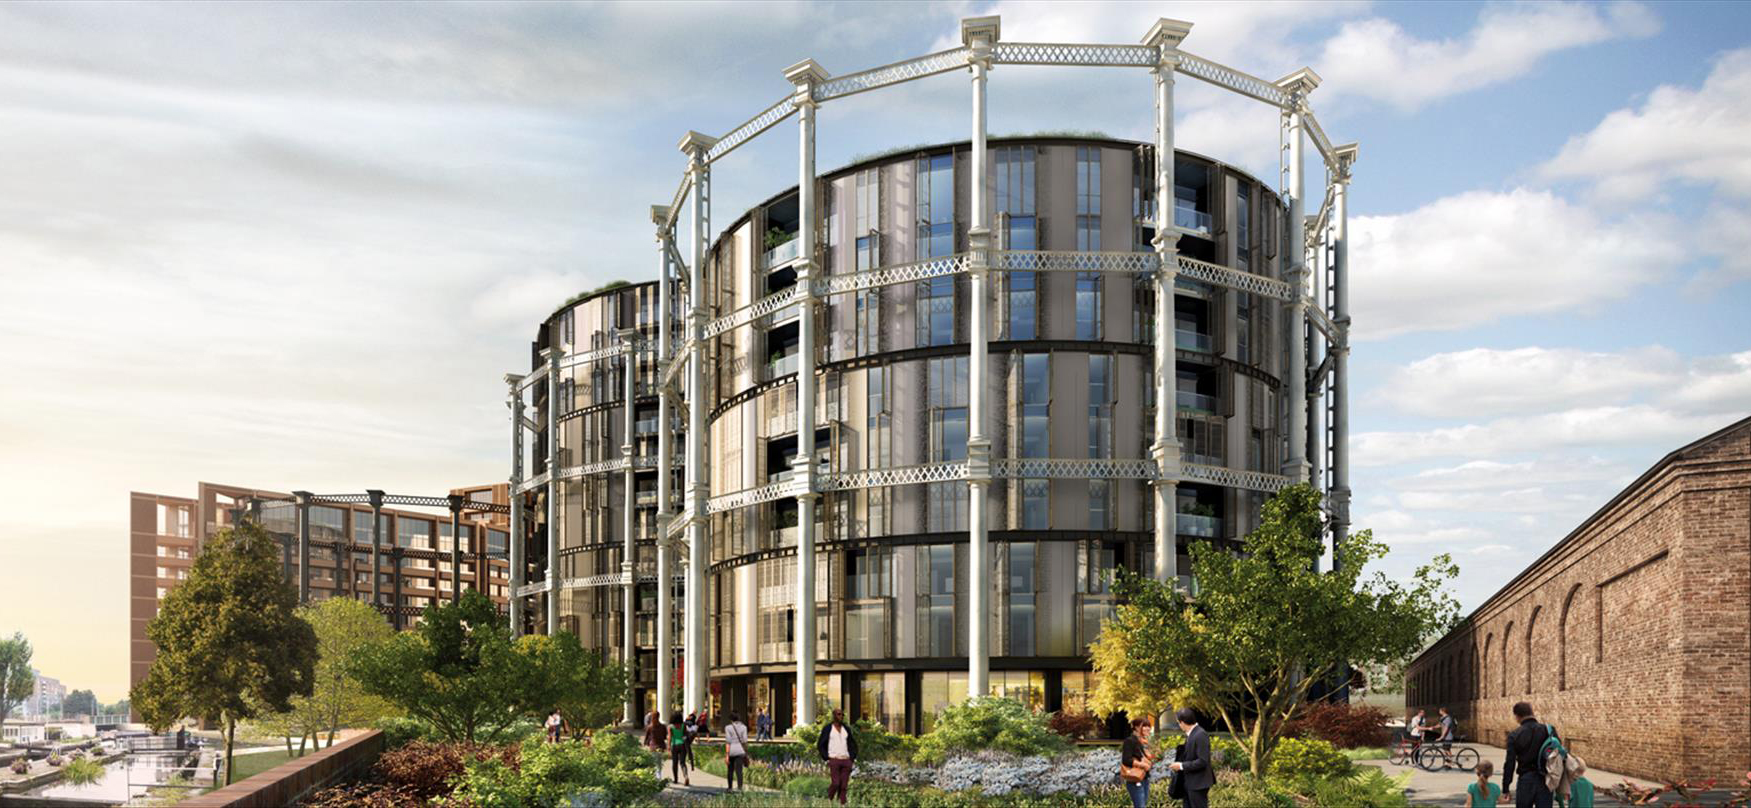 Gasholders apartments the most unusual london homes for sale right now